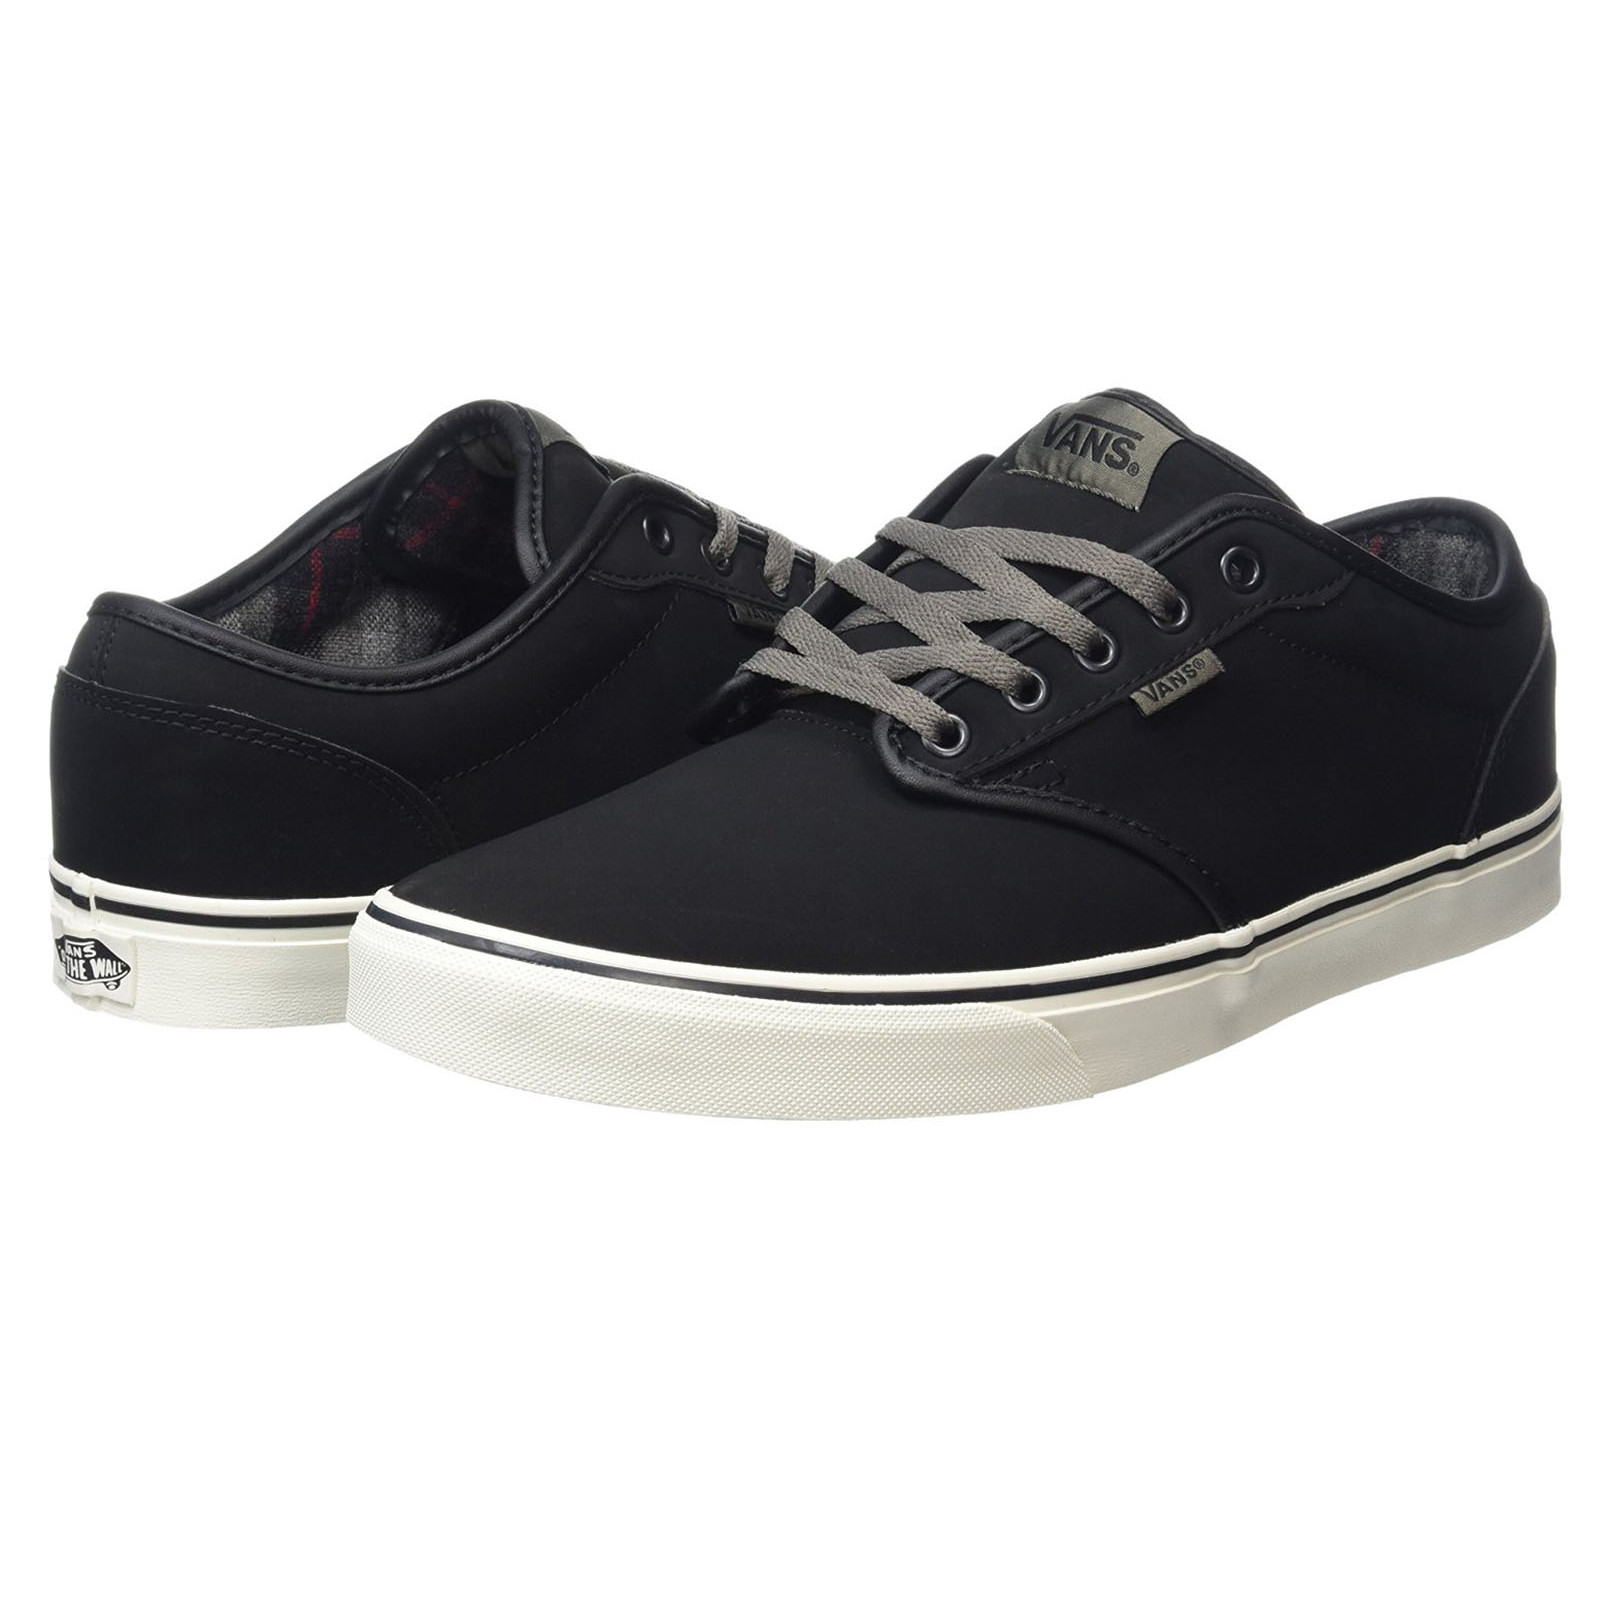 4bbdf8c5ffca46 Vans Men s Atwood All Weather Suede Leather Shoes Flannel Black ...